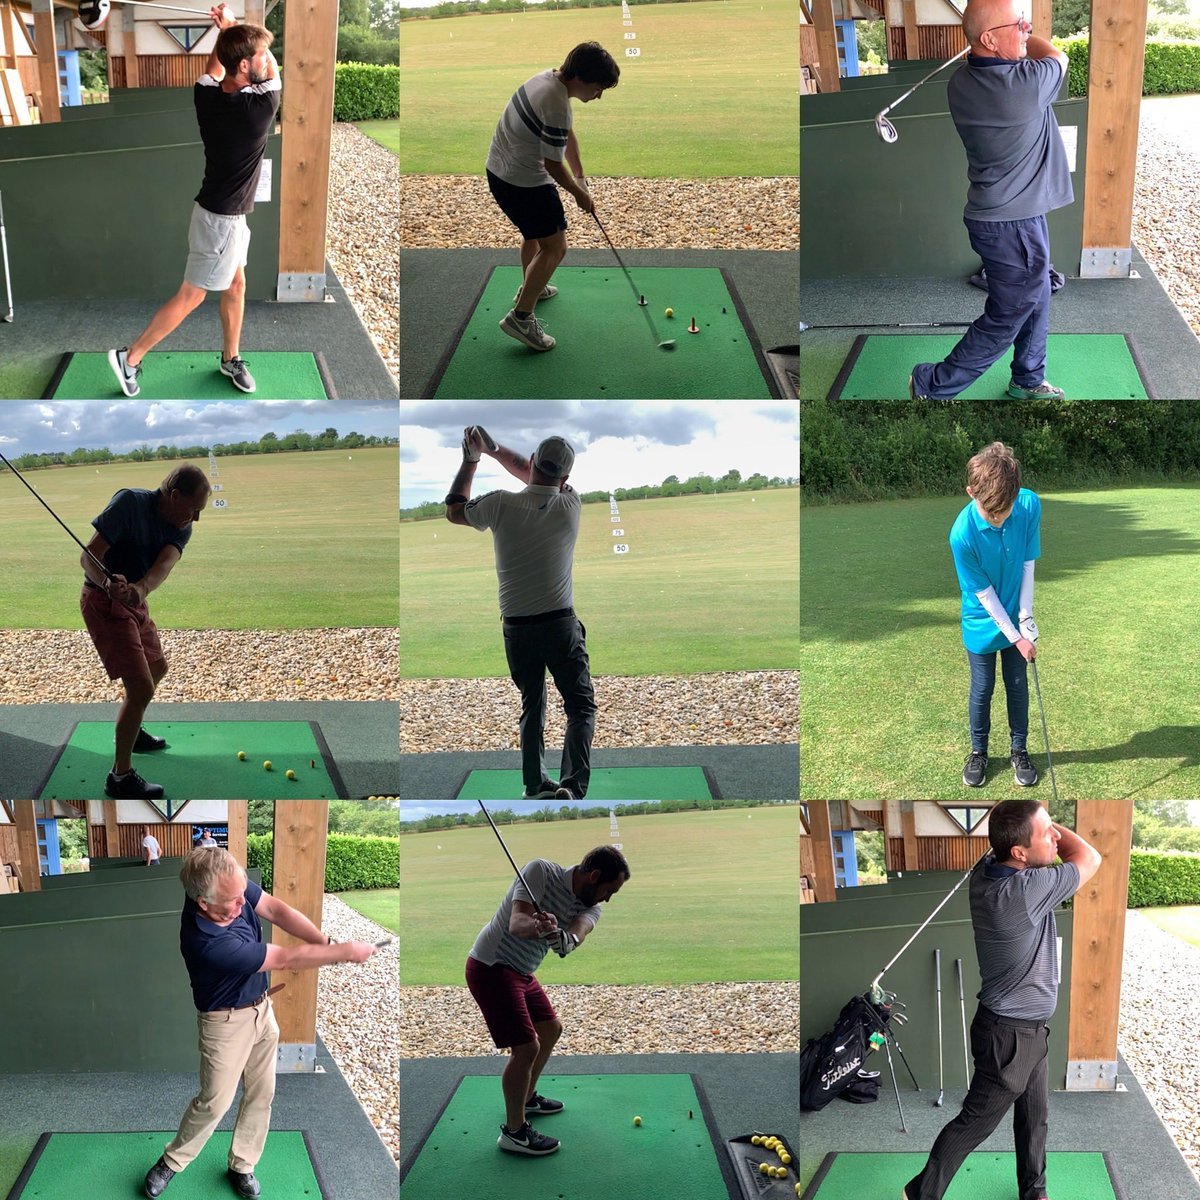 A great days coaching today @stow_golfcentre #golf #golflife #golfswing #golfstagram #golfcourse #golfcoaching#golfcoach #golflessons #golfpro #coaching #sport #fitness #health #exercise #mentalhealth #strength #power #speed #motivation #inspiration #dedication #learnpic.twitter.com/k1jkSXafWh